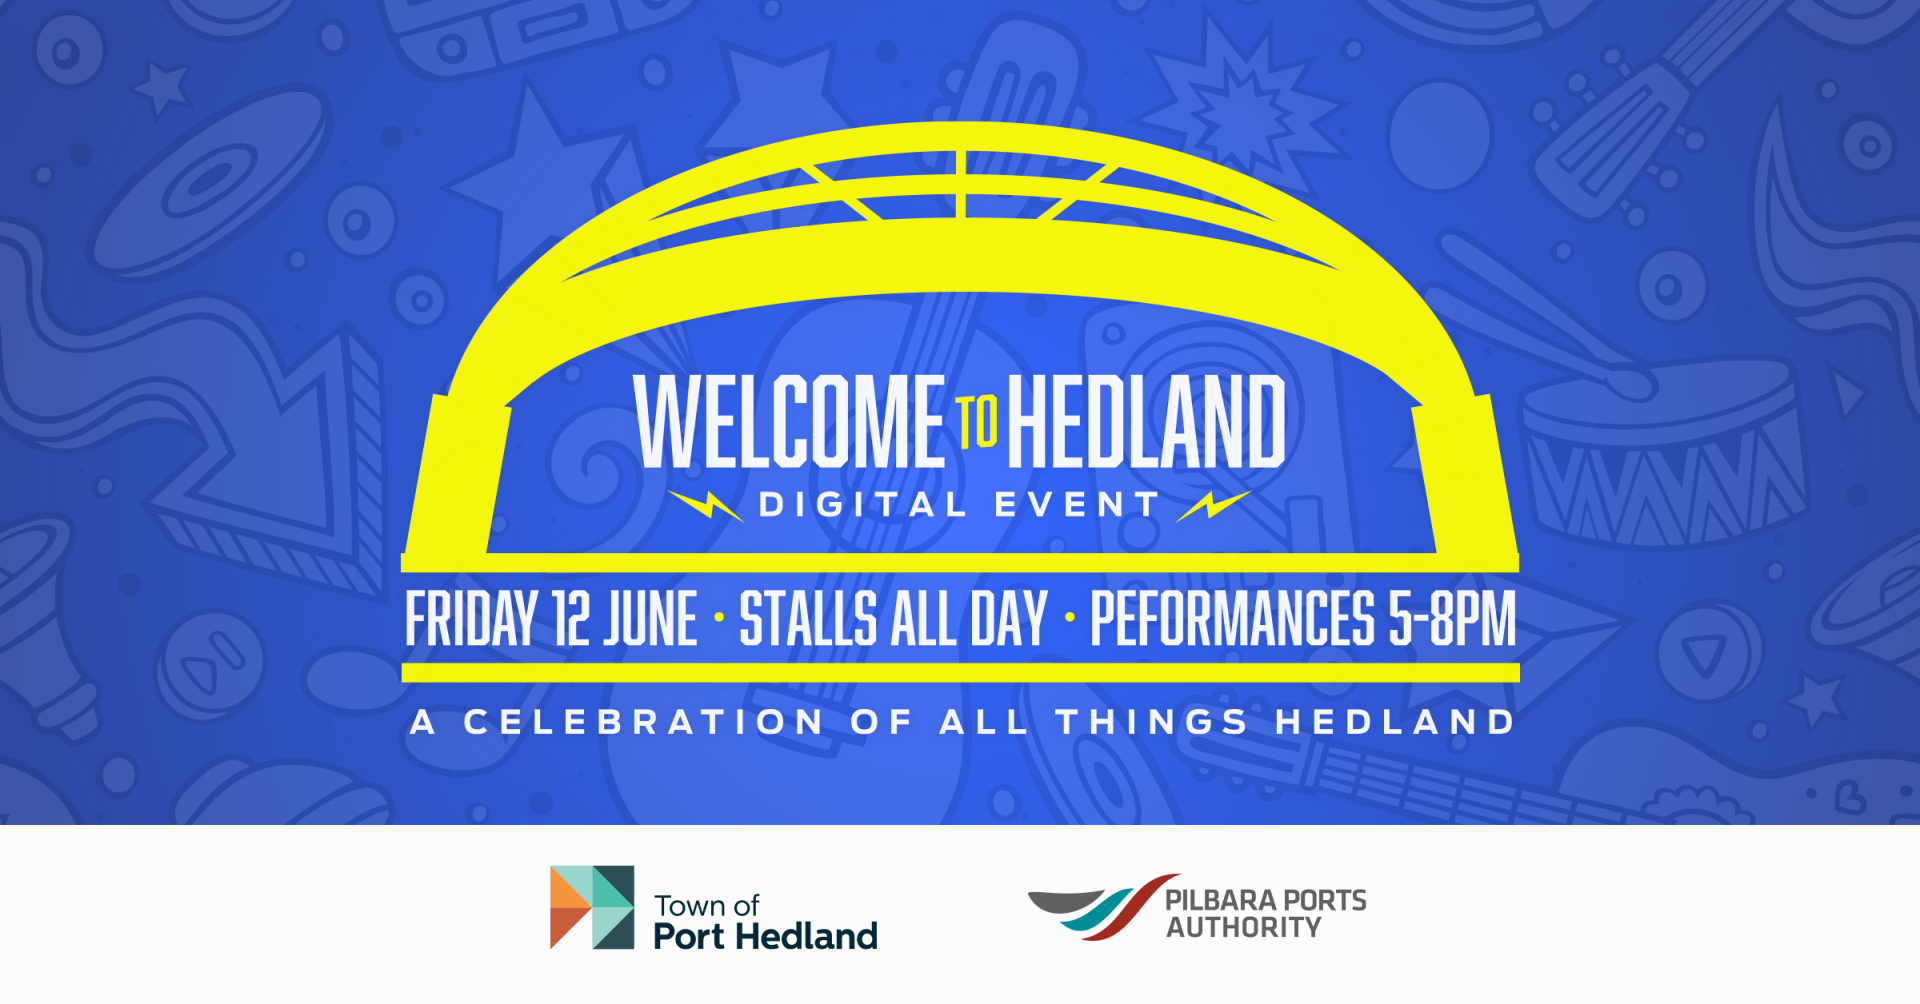 Town and Pilbara Ports Authority Welcome to Hedland Digital moves event